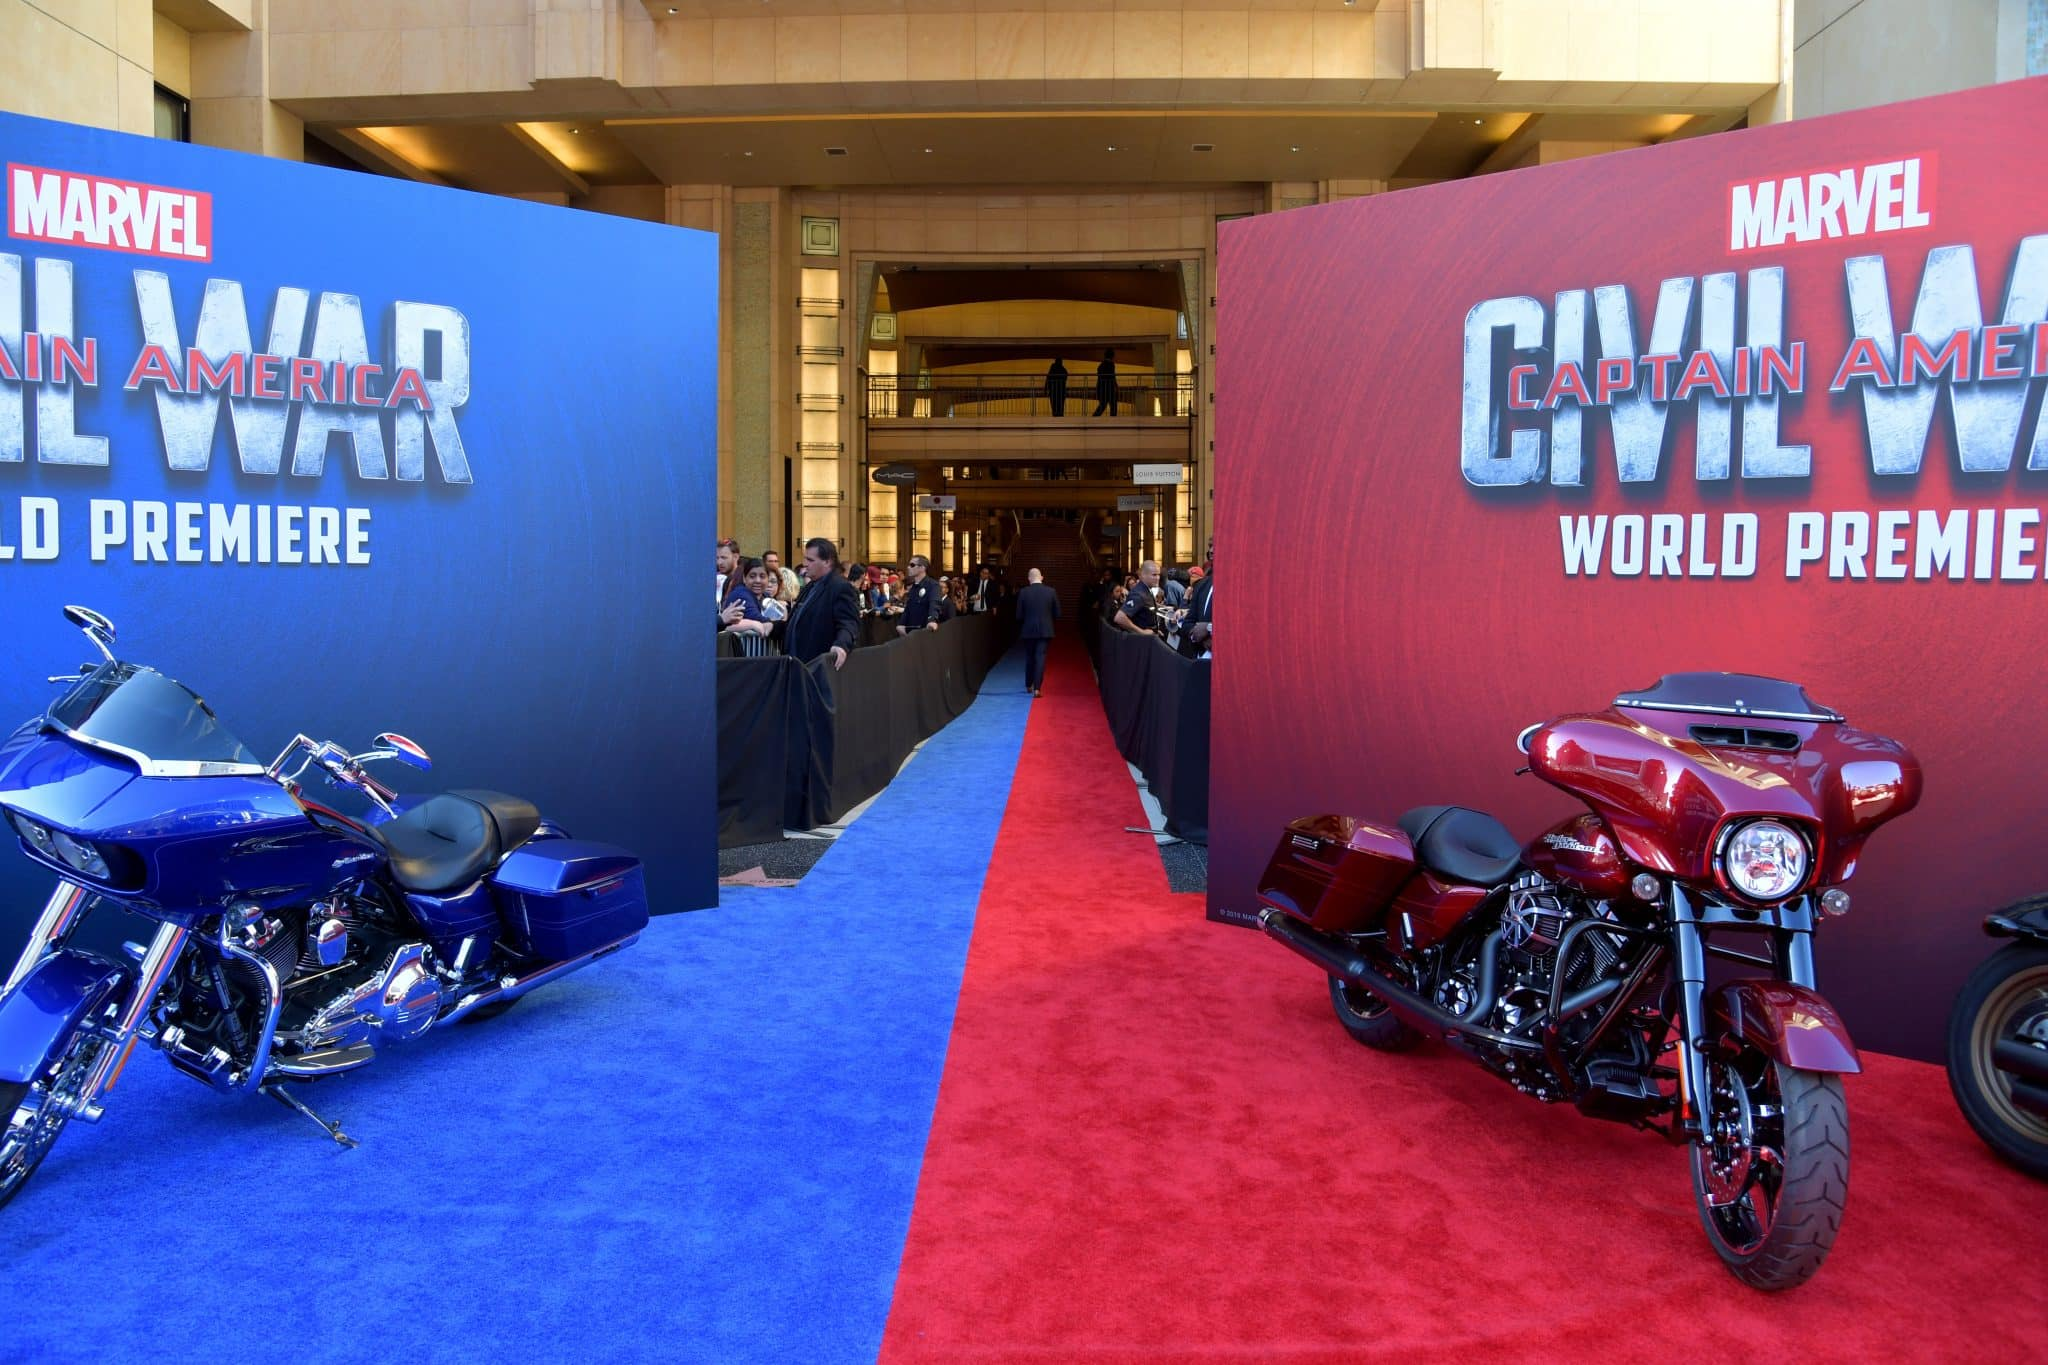 """HOLLYWOOD, CALIFORNIA - APRIL 12: Signage and displays are seen during The World Premiere of Marvel's """"Captain America: Civil War"""" at Dolby Theatre on April 12, 2016 in Los Angeles, California. (Photo by Lester Cohen/Getty Images for Disney)"""